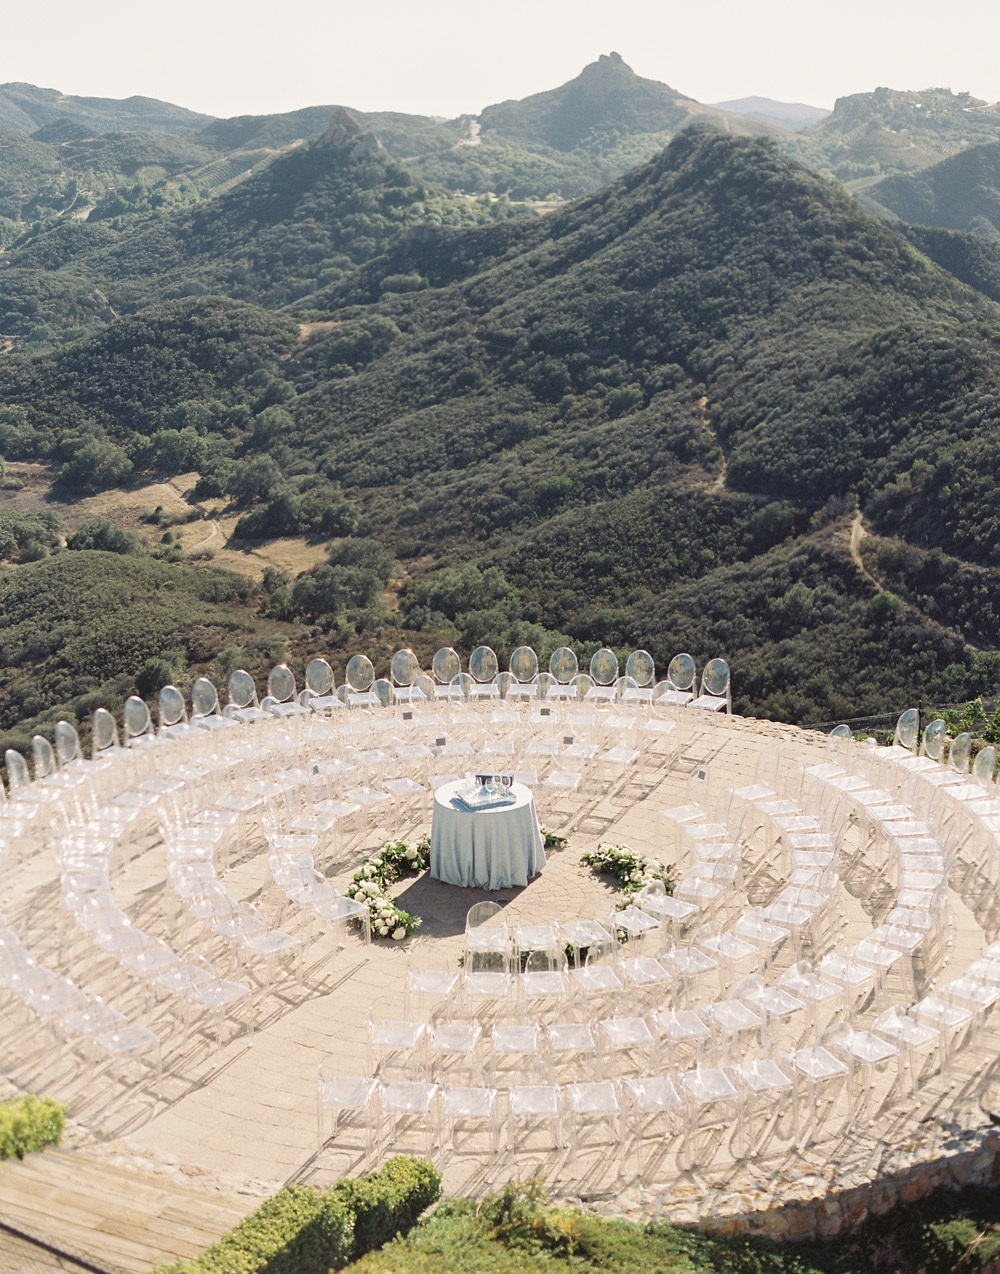 Circular wedding ceremony seating for an intimate wedding ceremony on the helipad of Malibu Rocky Oaks.